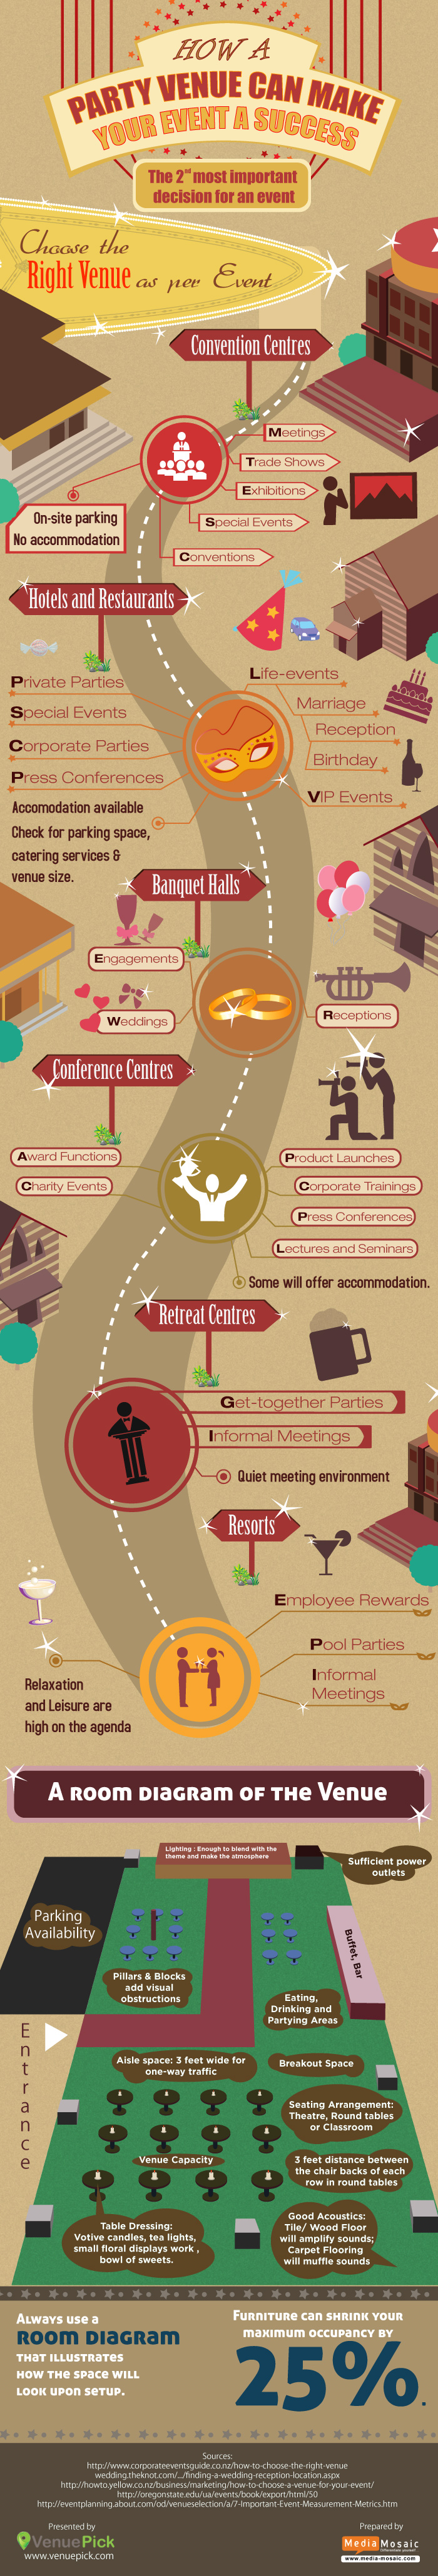 how-a-party-venue-can-make-an-event-a-success-infographic_52627ff1c16ef